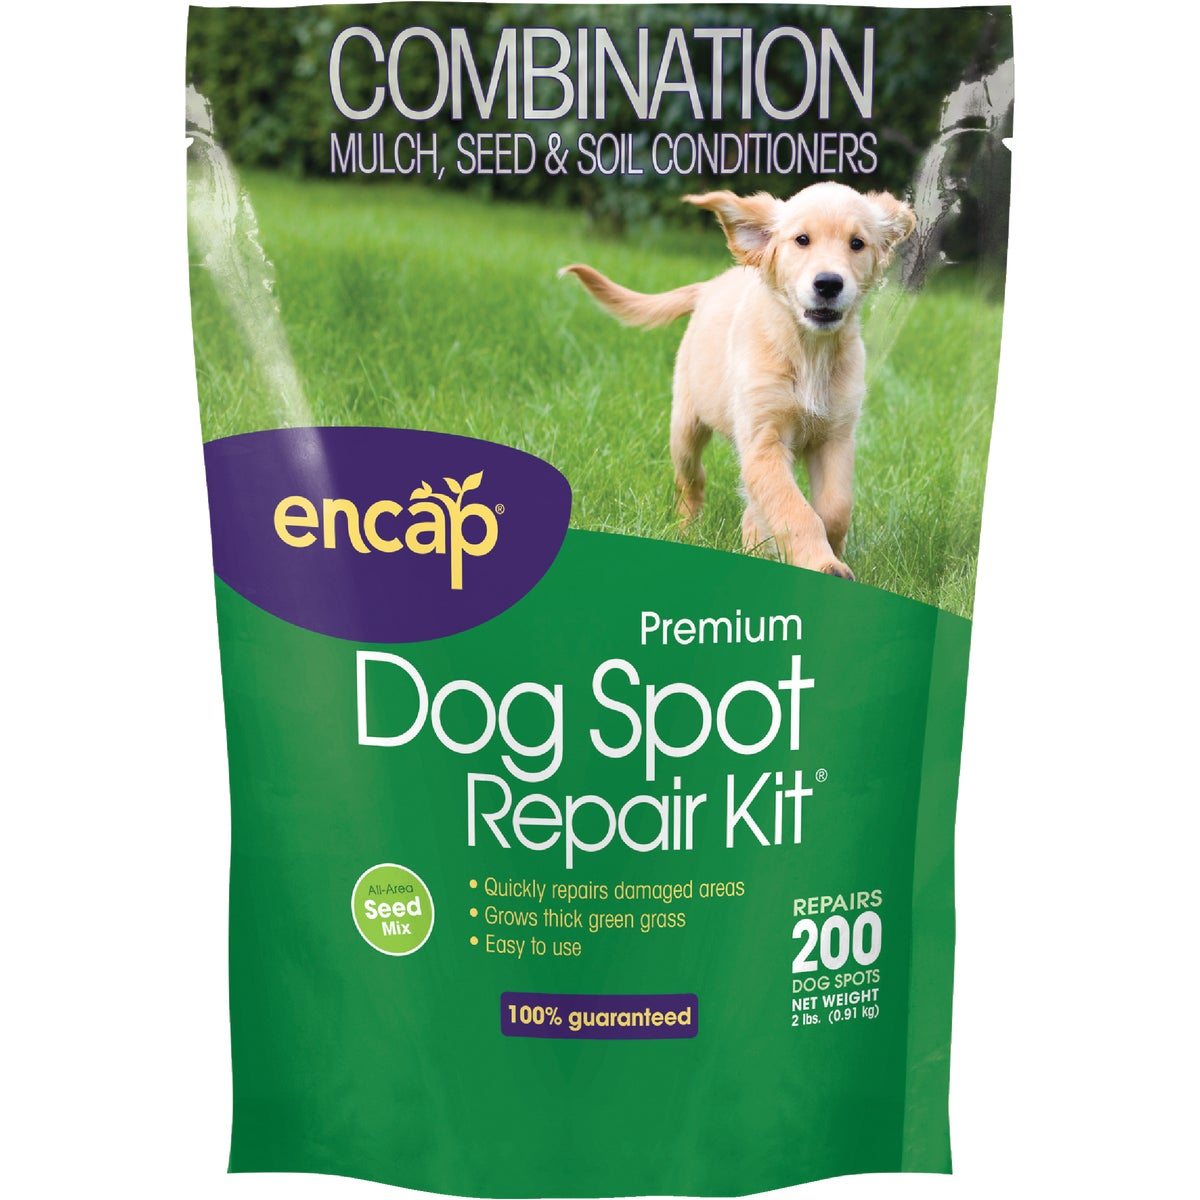 DOG REPAIR KIT-100 SPOTS - 11051-6 by Encap Llc